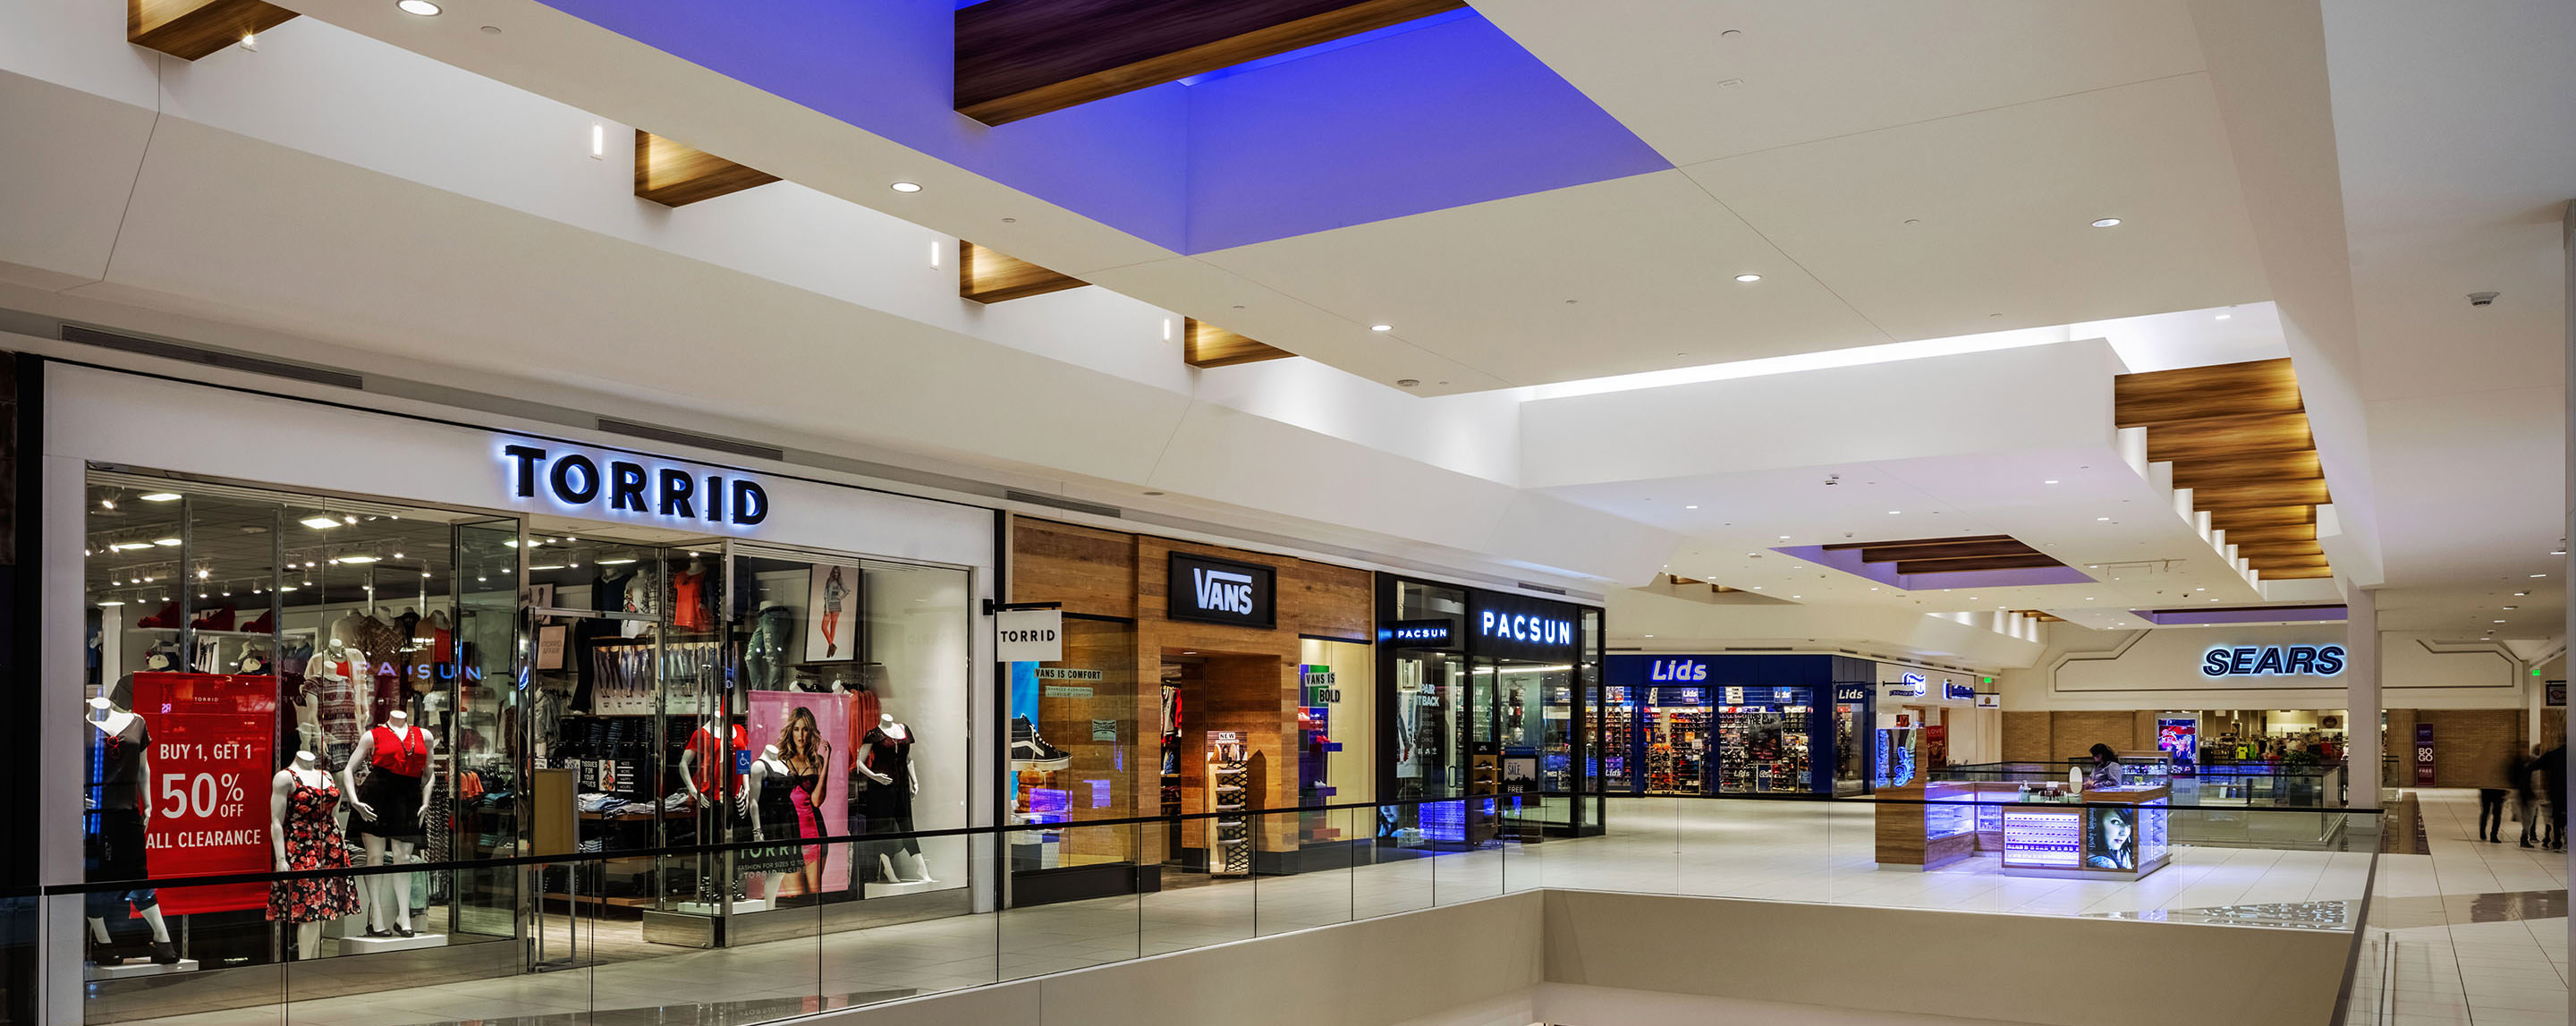 Torrid, Vans, PacSun, Lids and Sears are just a few of the stores that can be found on the second level at Southwest Plaza.